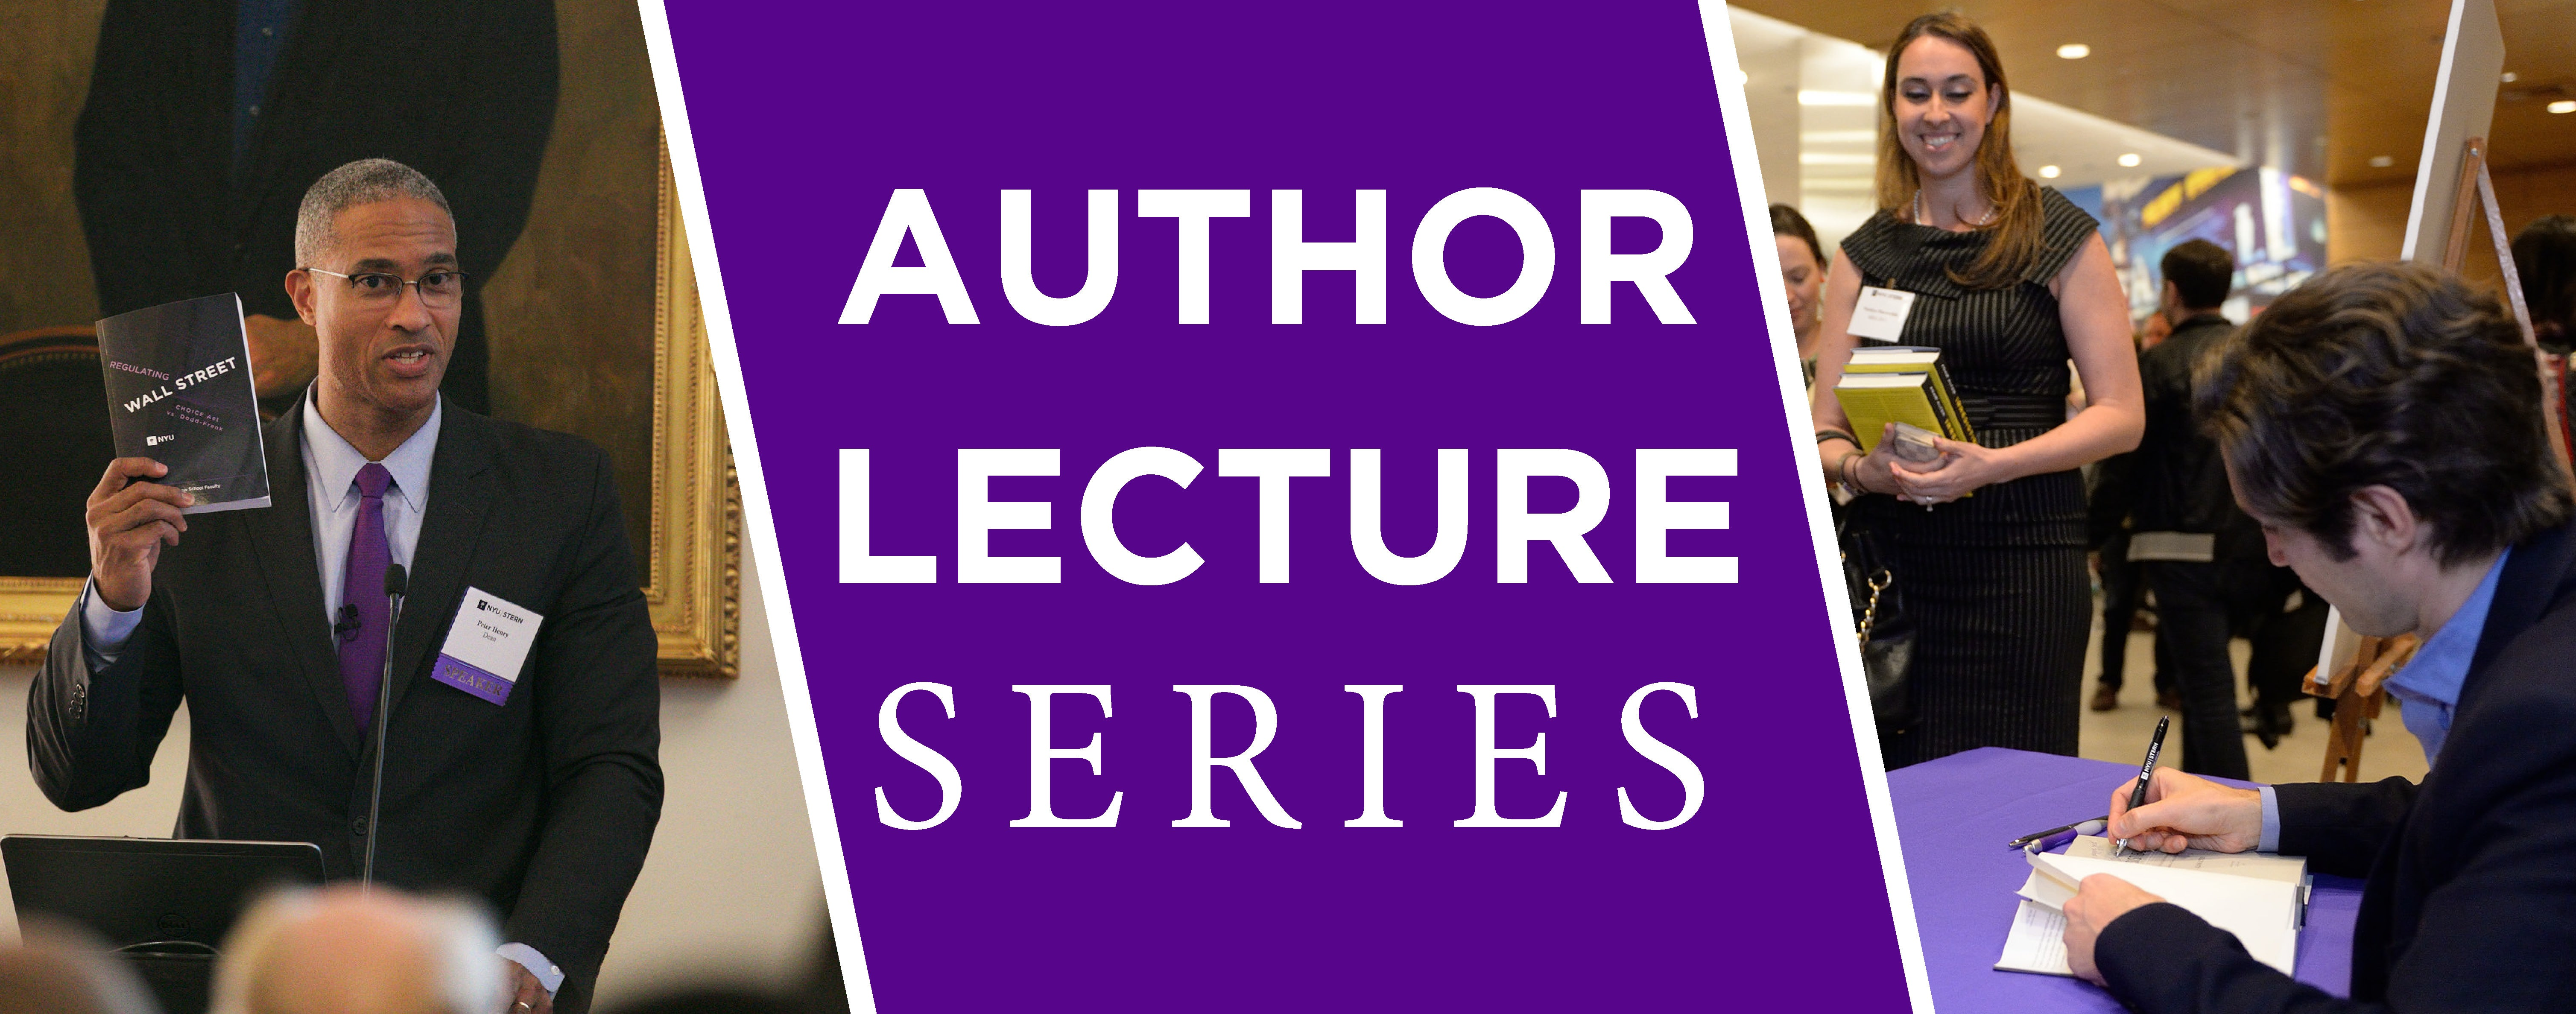 Author Lecture Series Photo Banner Splash